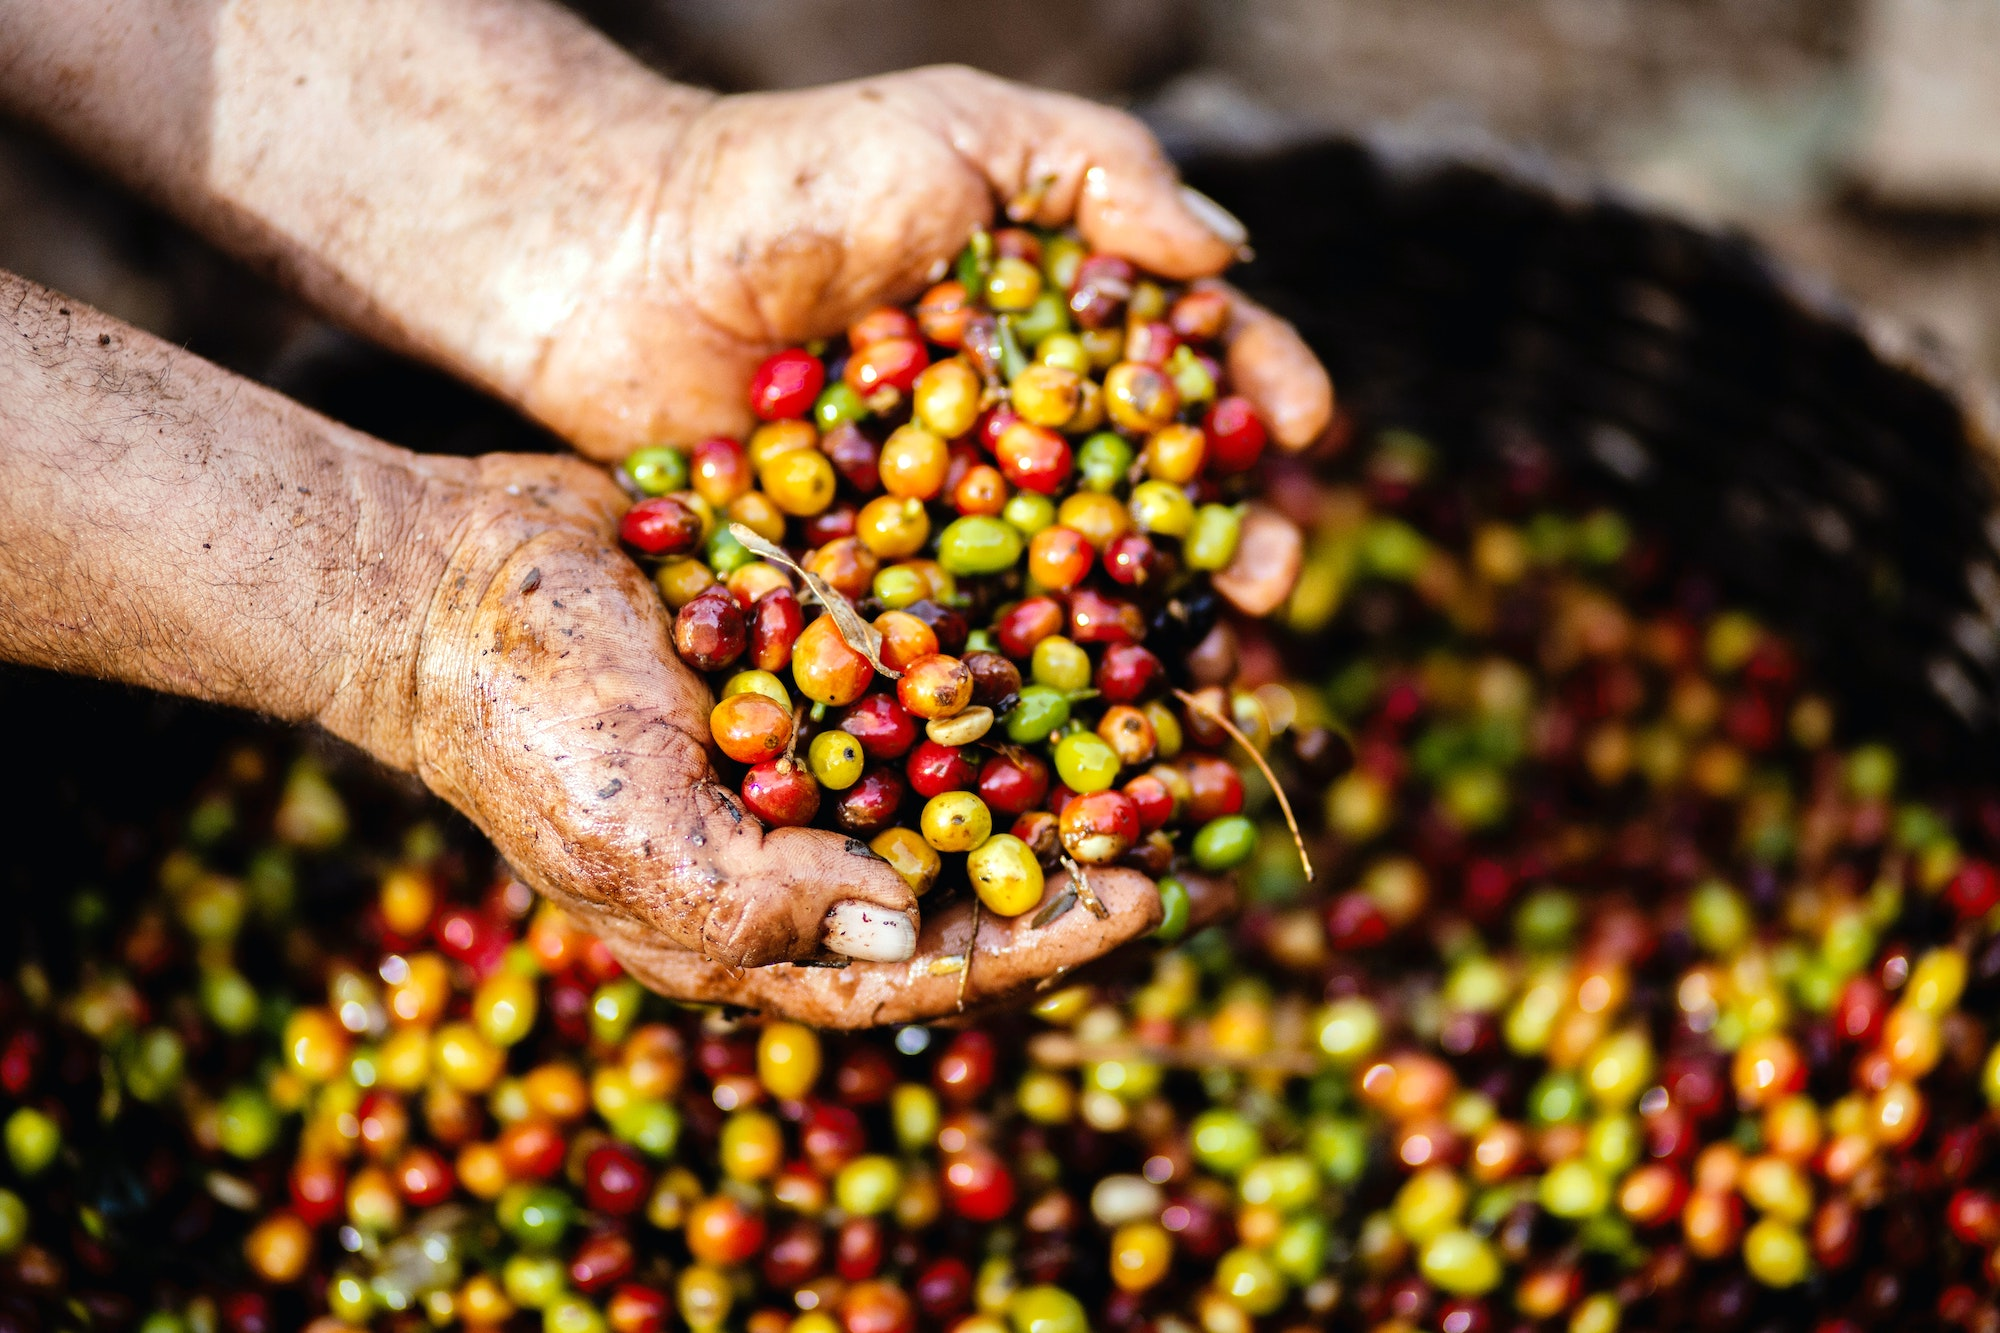 From planting trees and harvesting cherries toroastingthem, coffee farming involves high-maintenance procedures in order to sustain it